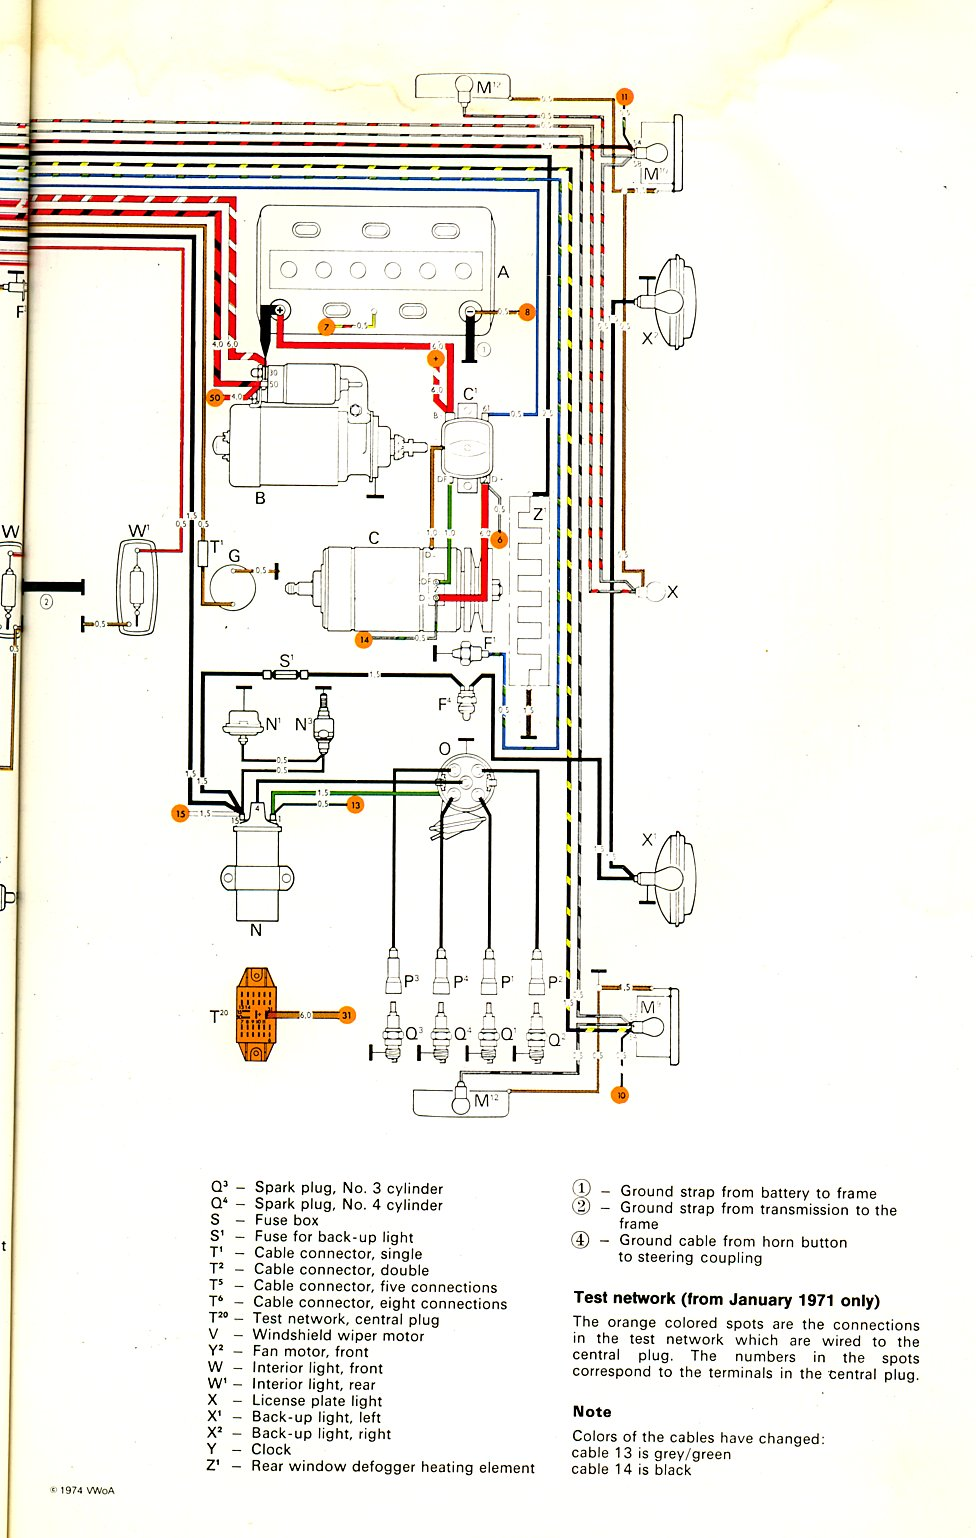 baybus_71b thesamba com type 2 wiring diagrams 1971 vw bus wiring diagram at cos-gaming.co